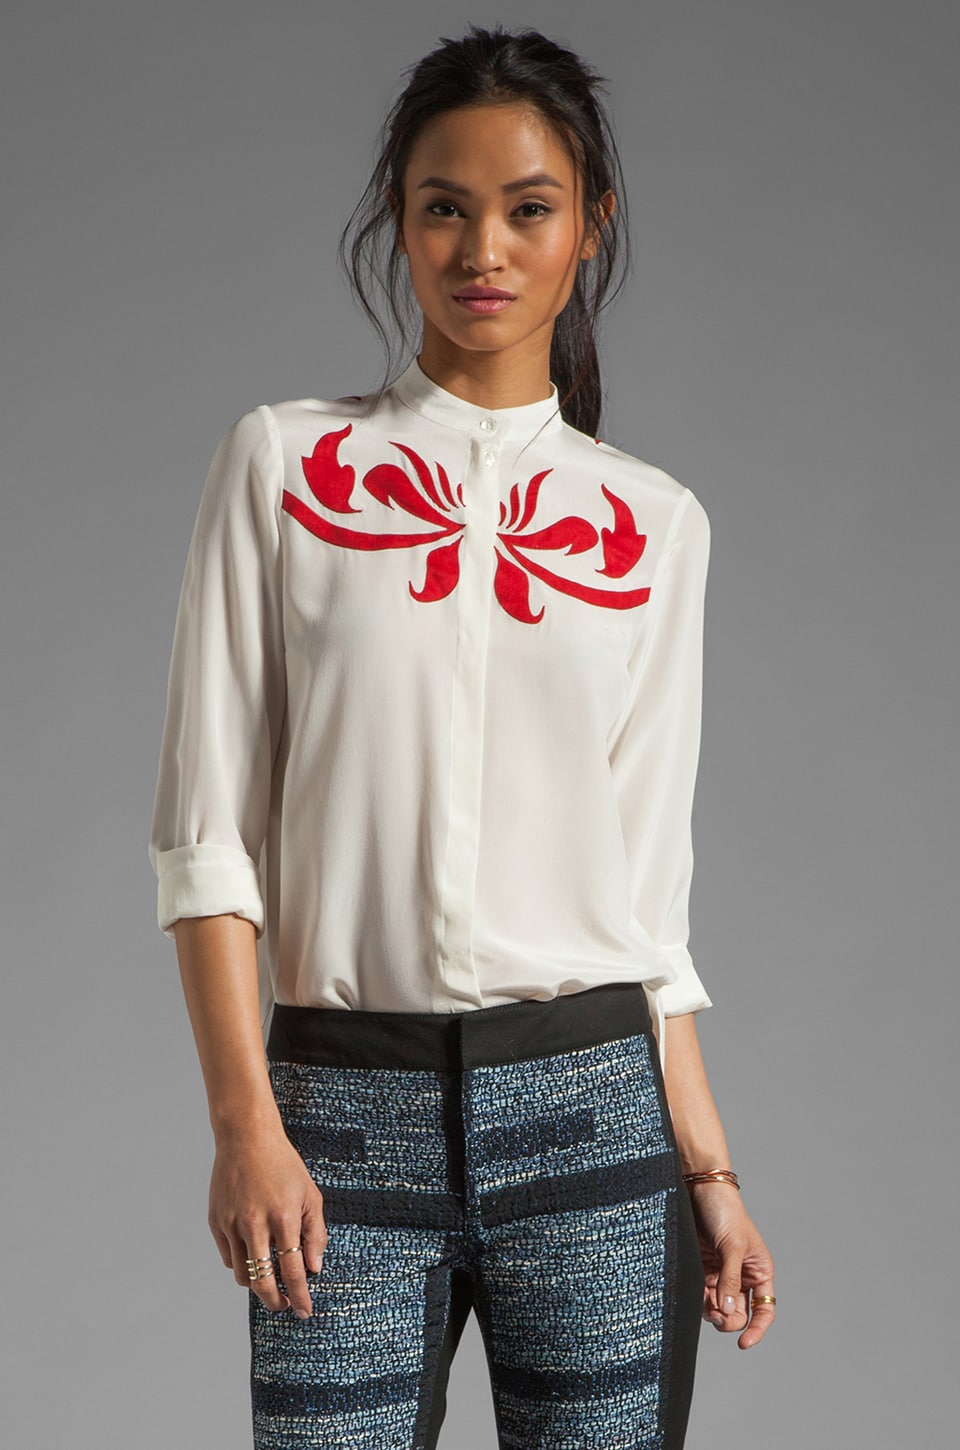 DEREK LAM 10 CROSBY Mandarin Collar Blouse en Soft White/Red